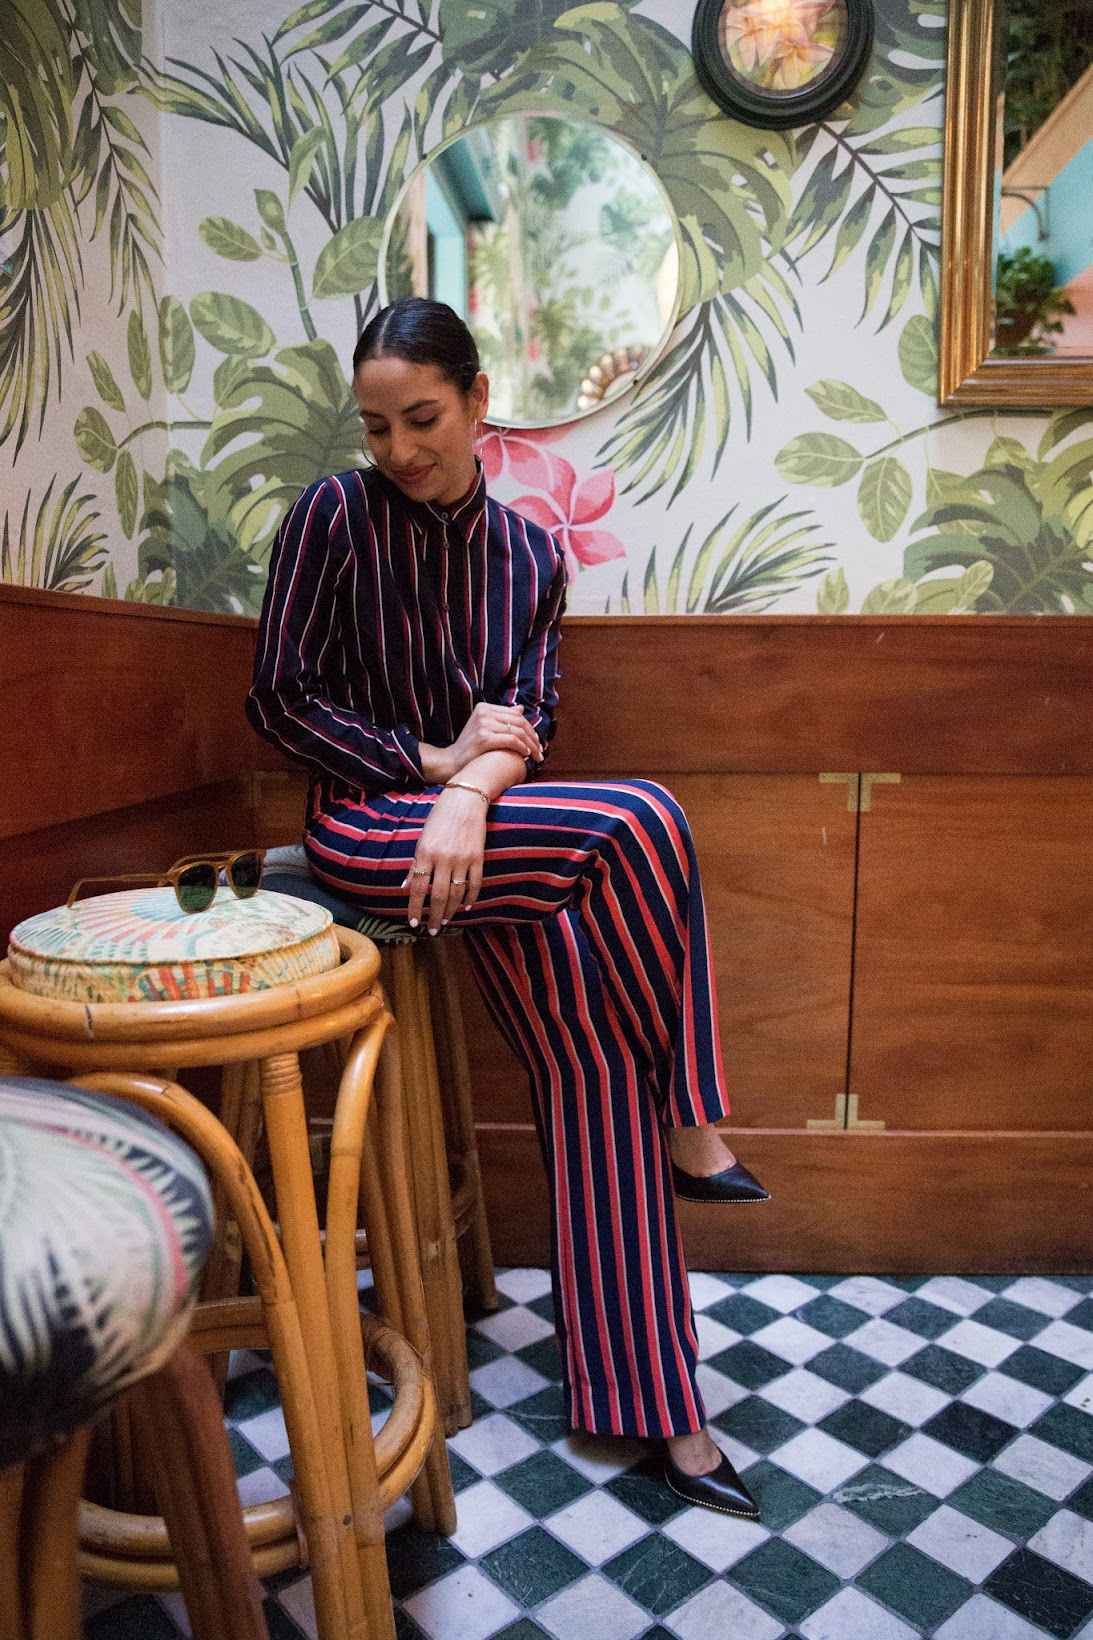 Banana Republic, stripes on stripes, what moves me, sponsored post , work chic looks, leo's oyster bar